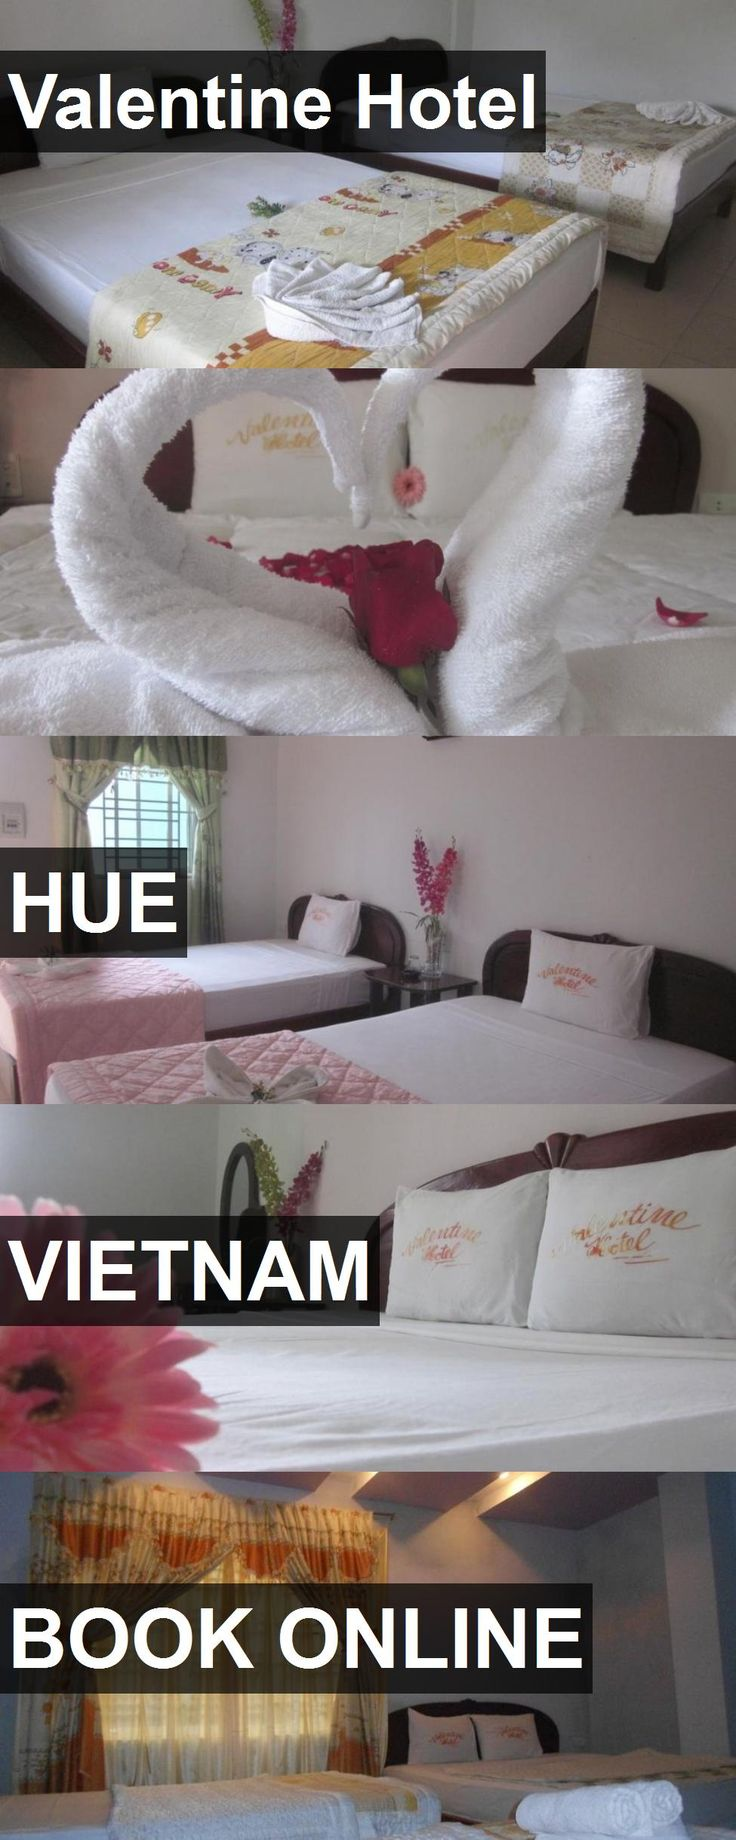 Hotel Valentine Hotel in Hue, Vietnam. For more information, photos, reviews and best prices please follow the link. #Vietnam #Hue #hotel #travel #vacation